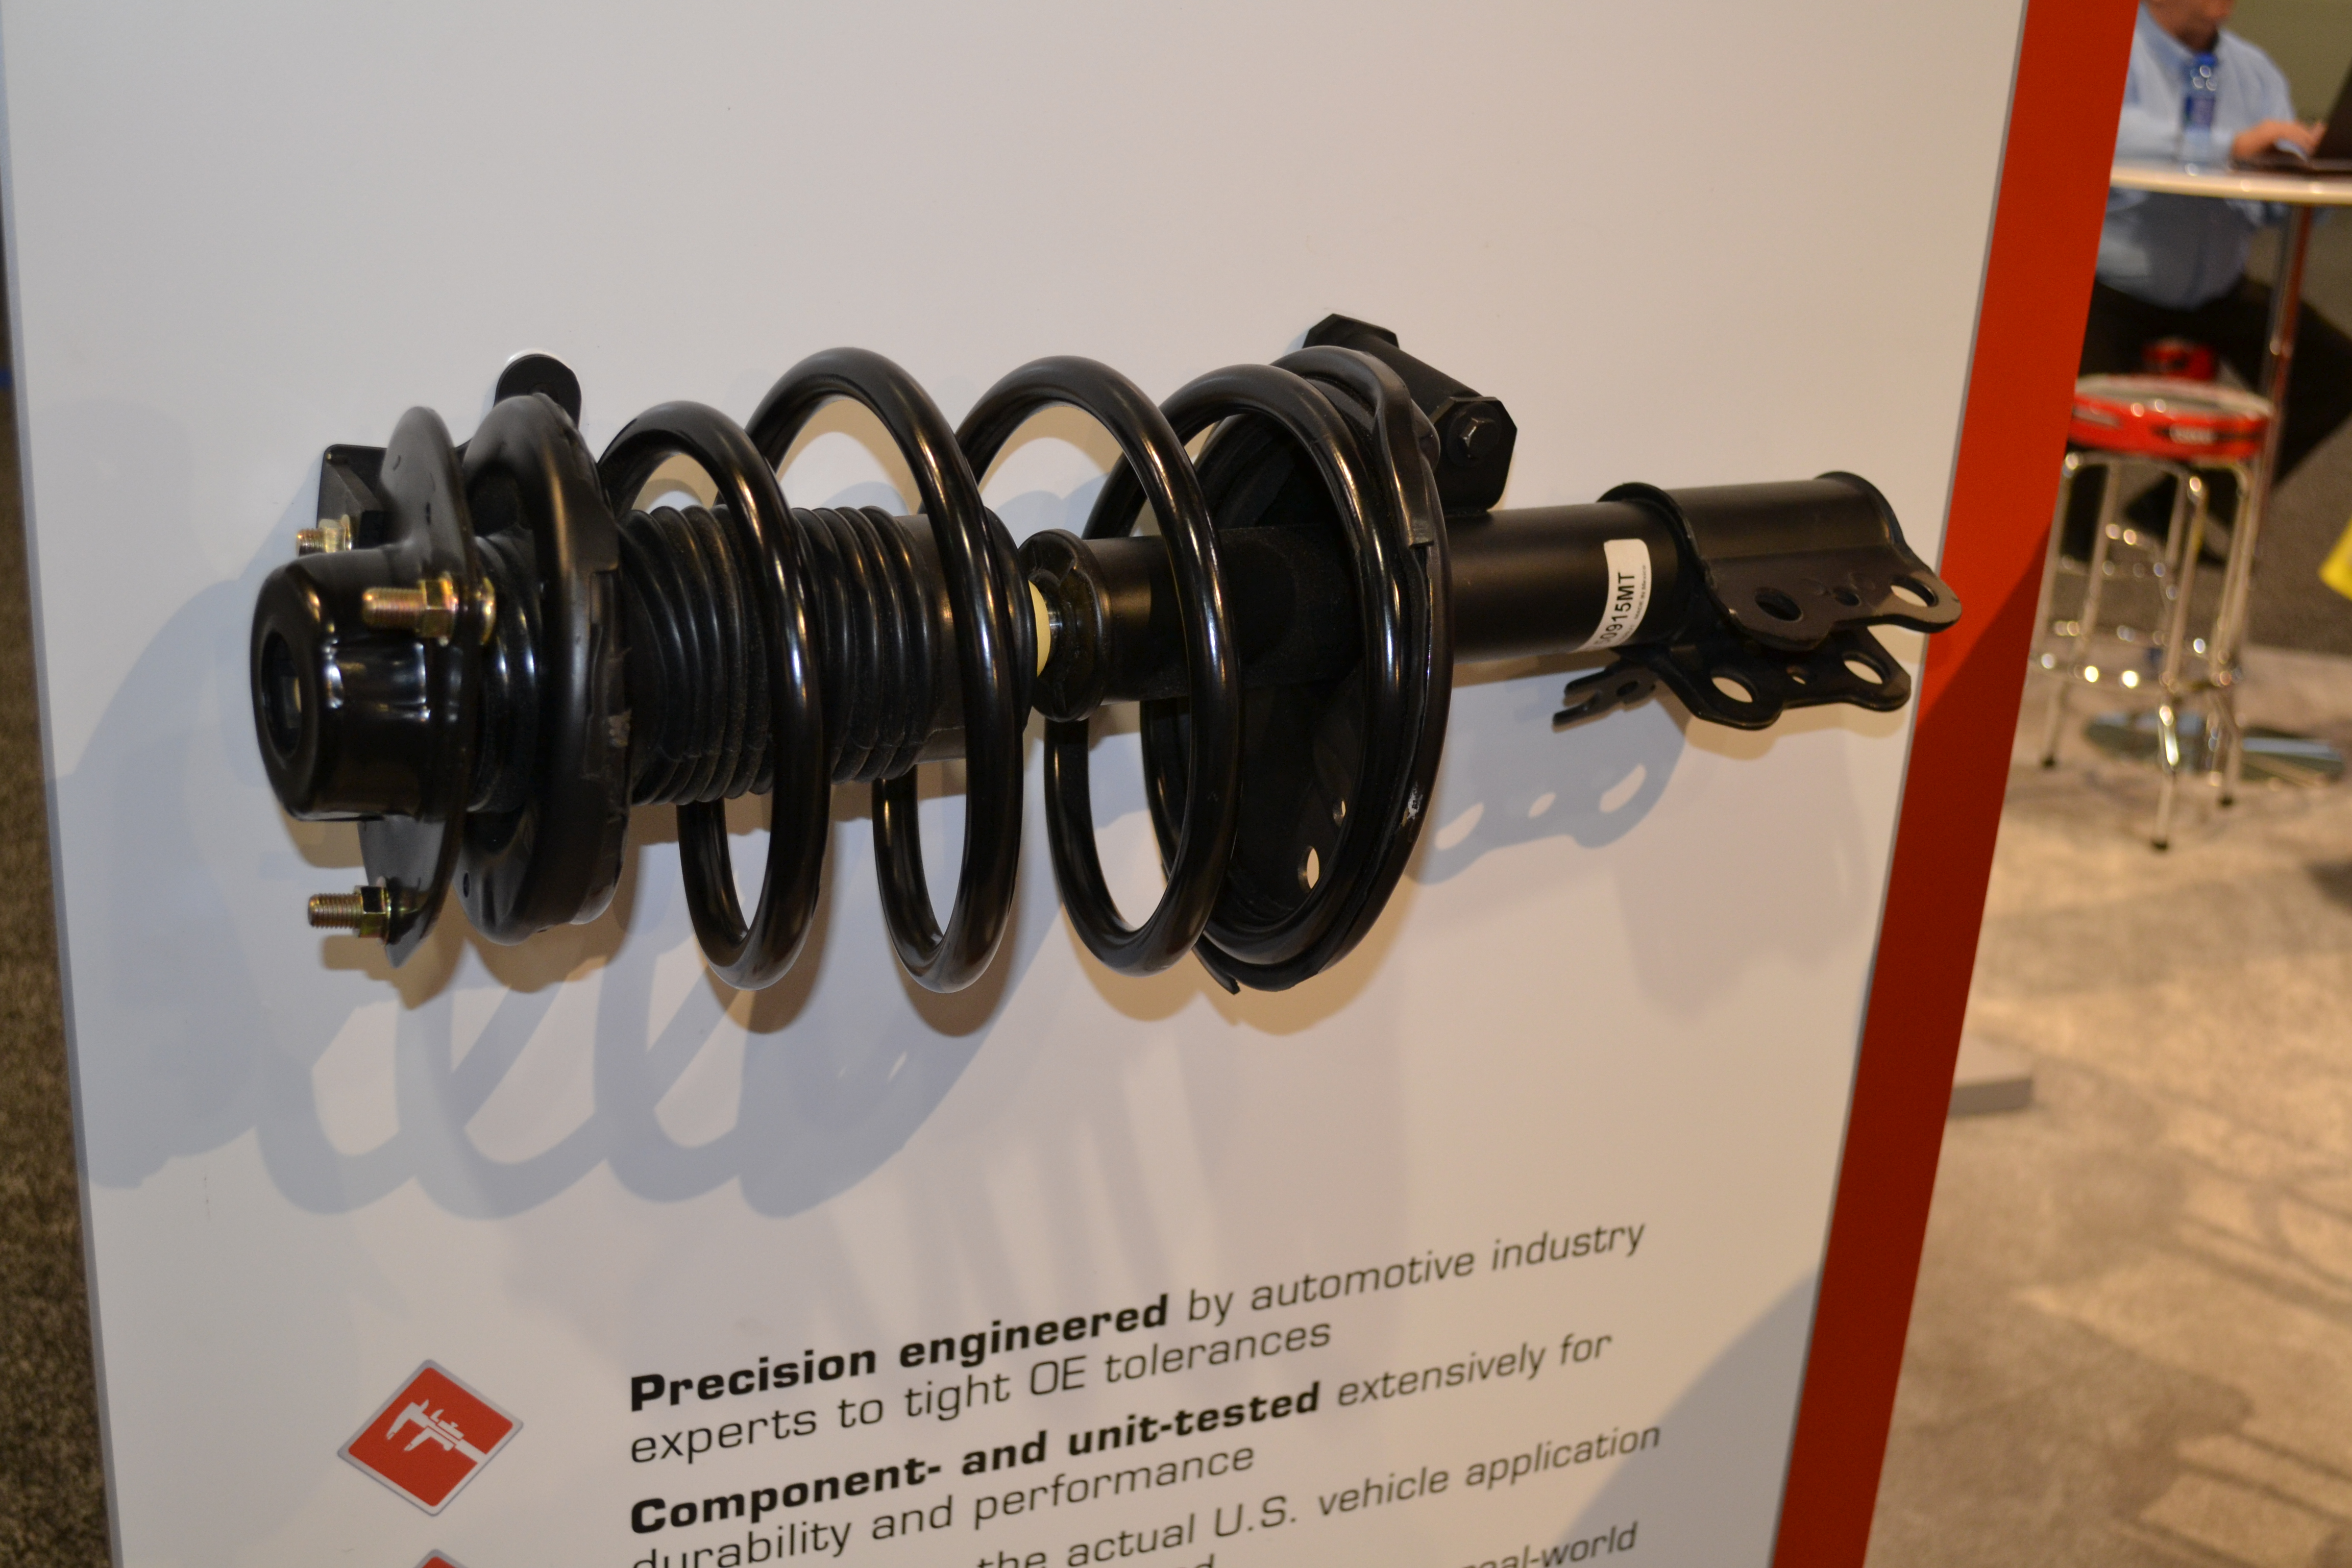 Gabriel shocks and struts brand adds parts to cover more than 10 million VIOs